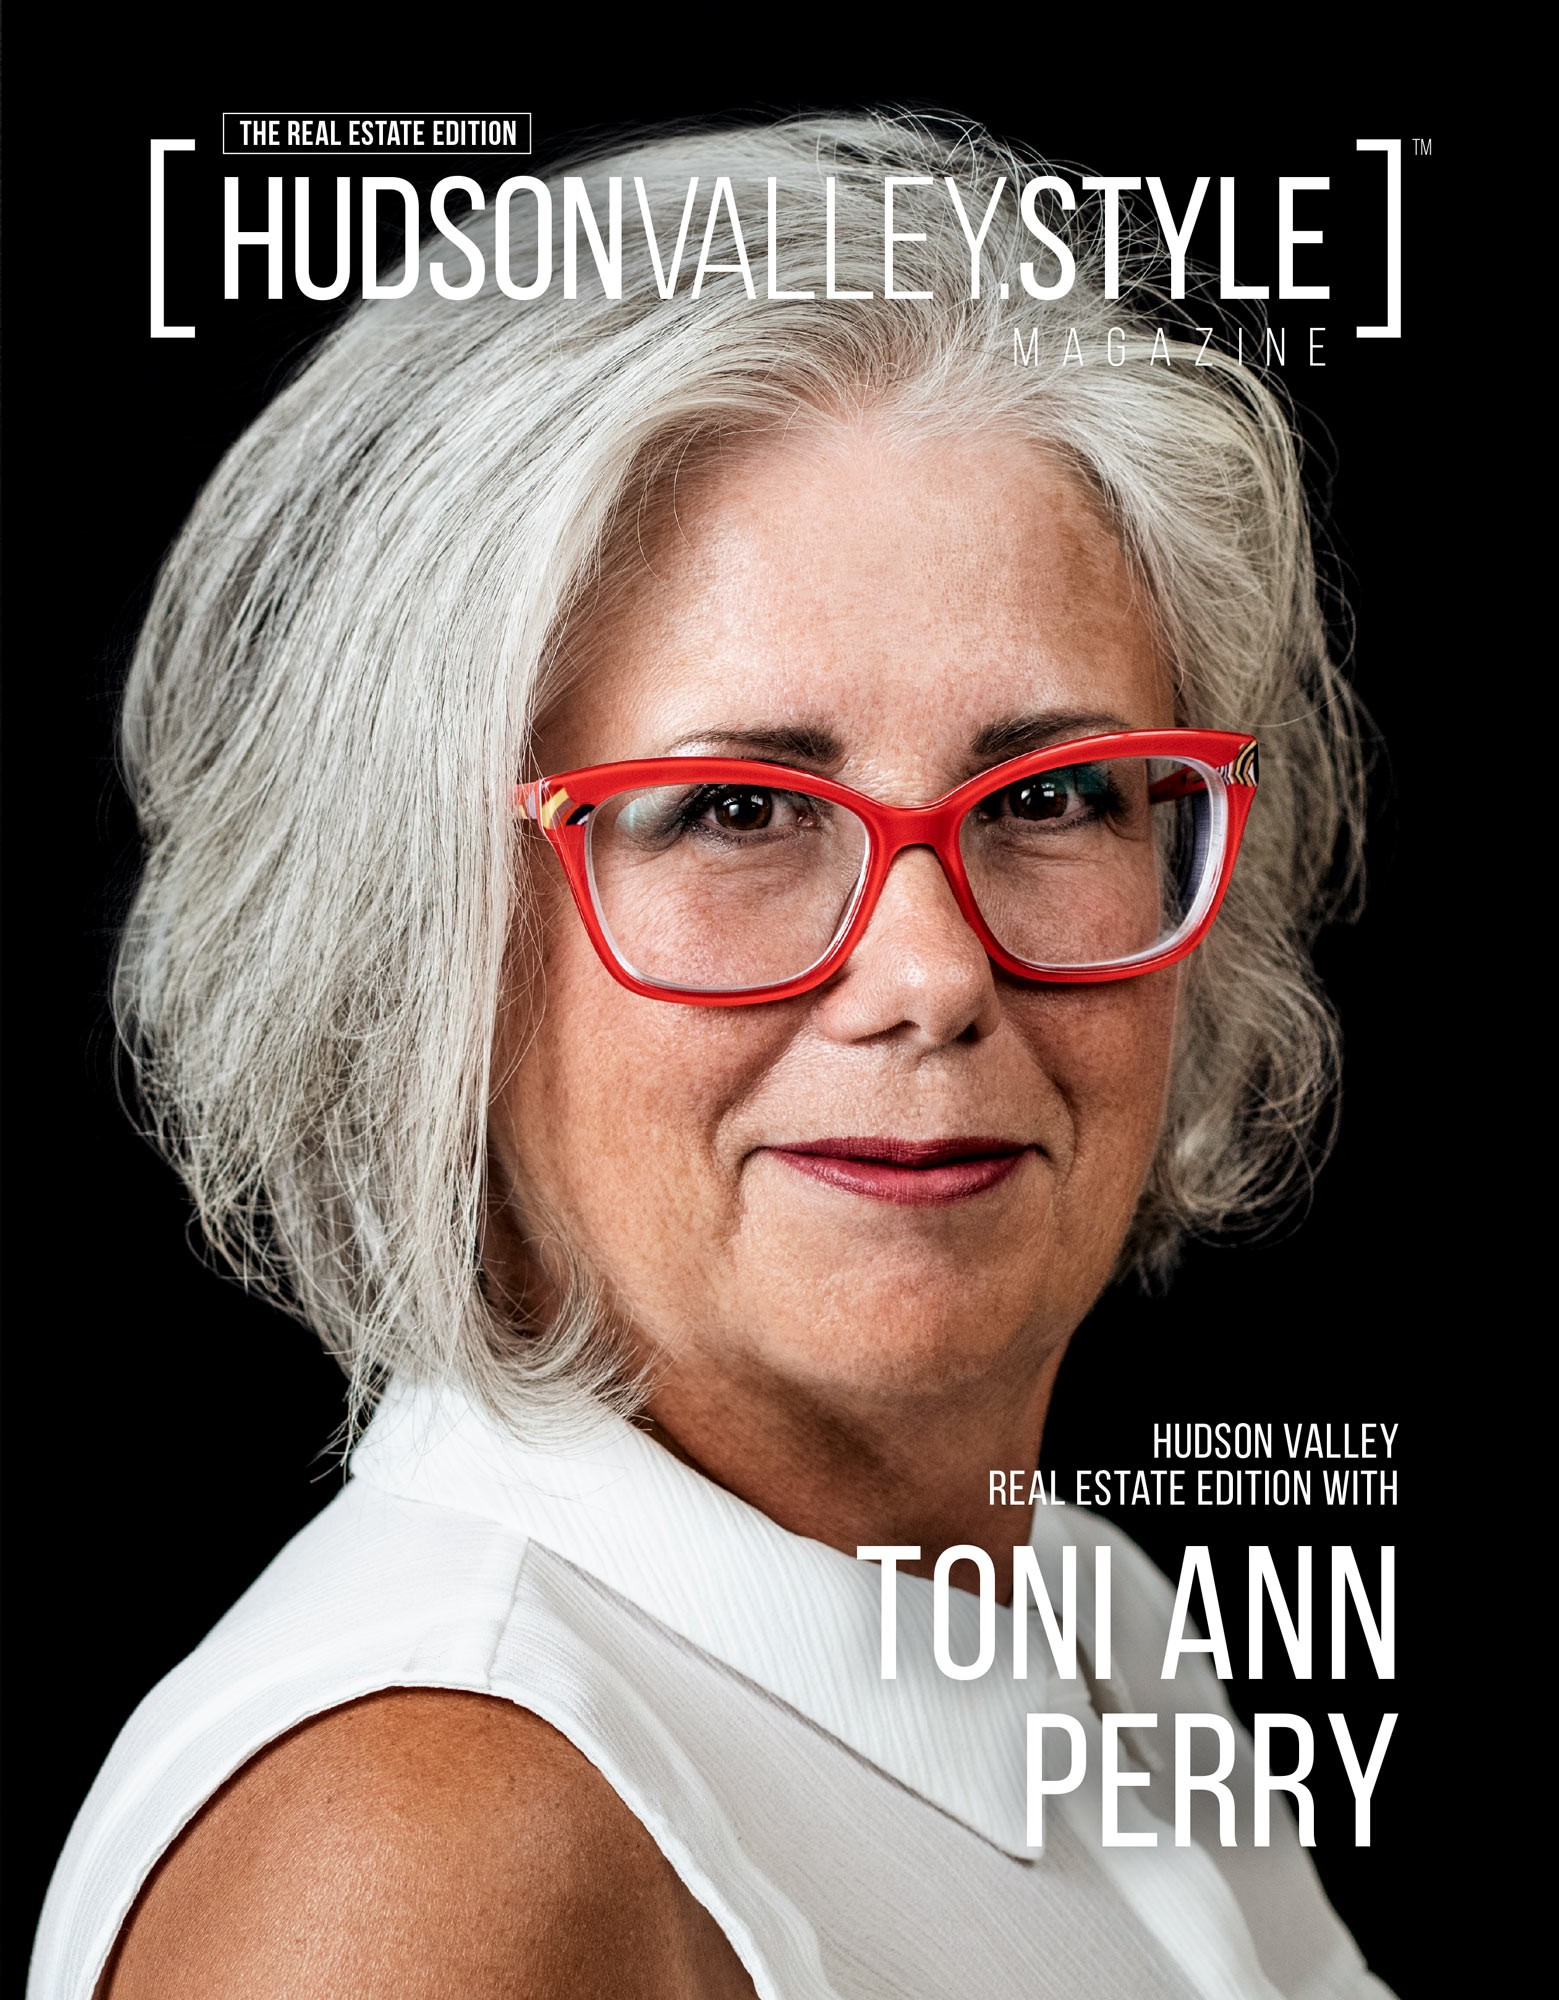 Toni Ann Perry for the Hudson Valley Style Magazine - Portrait Photography by Maxwell Alexander